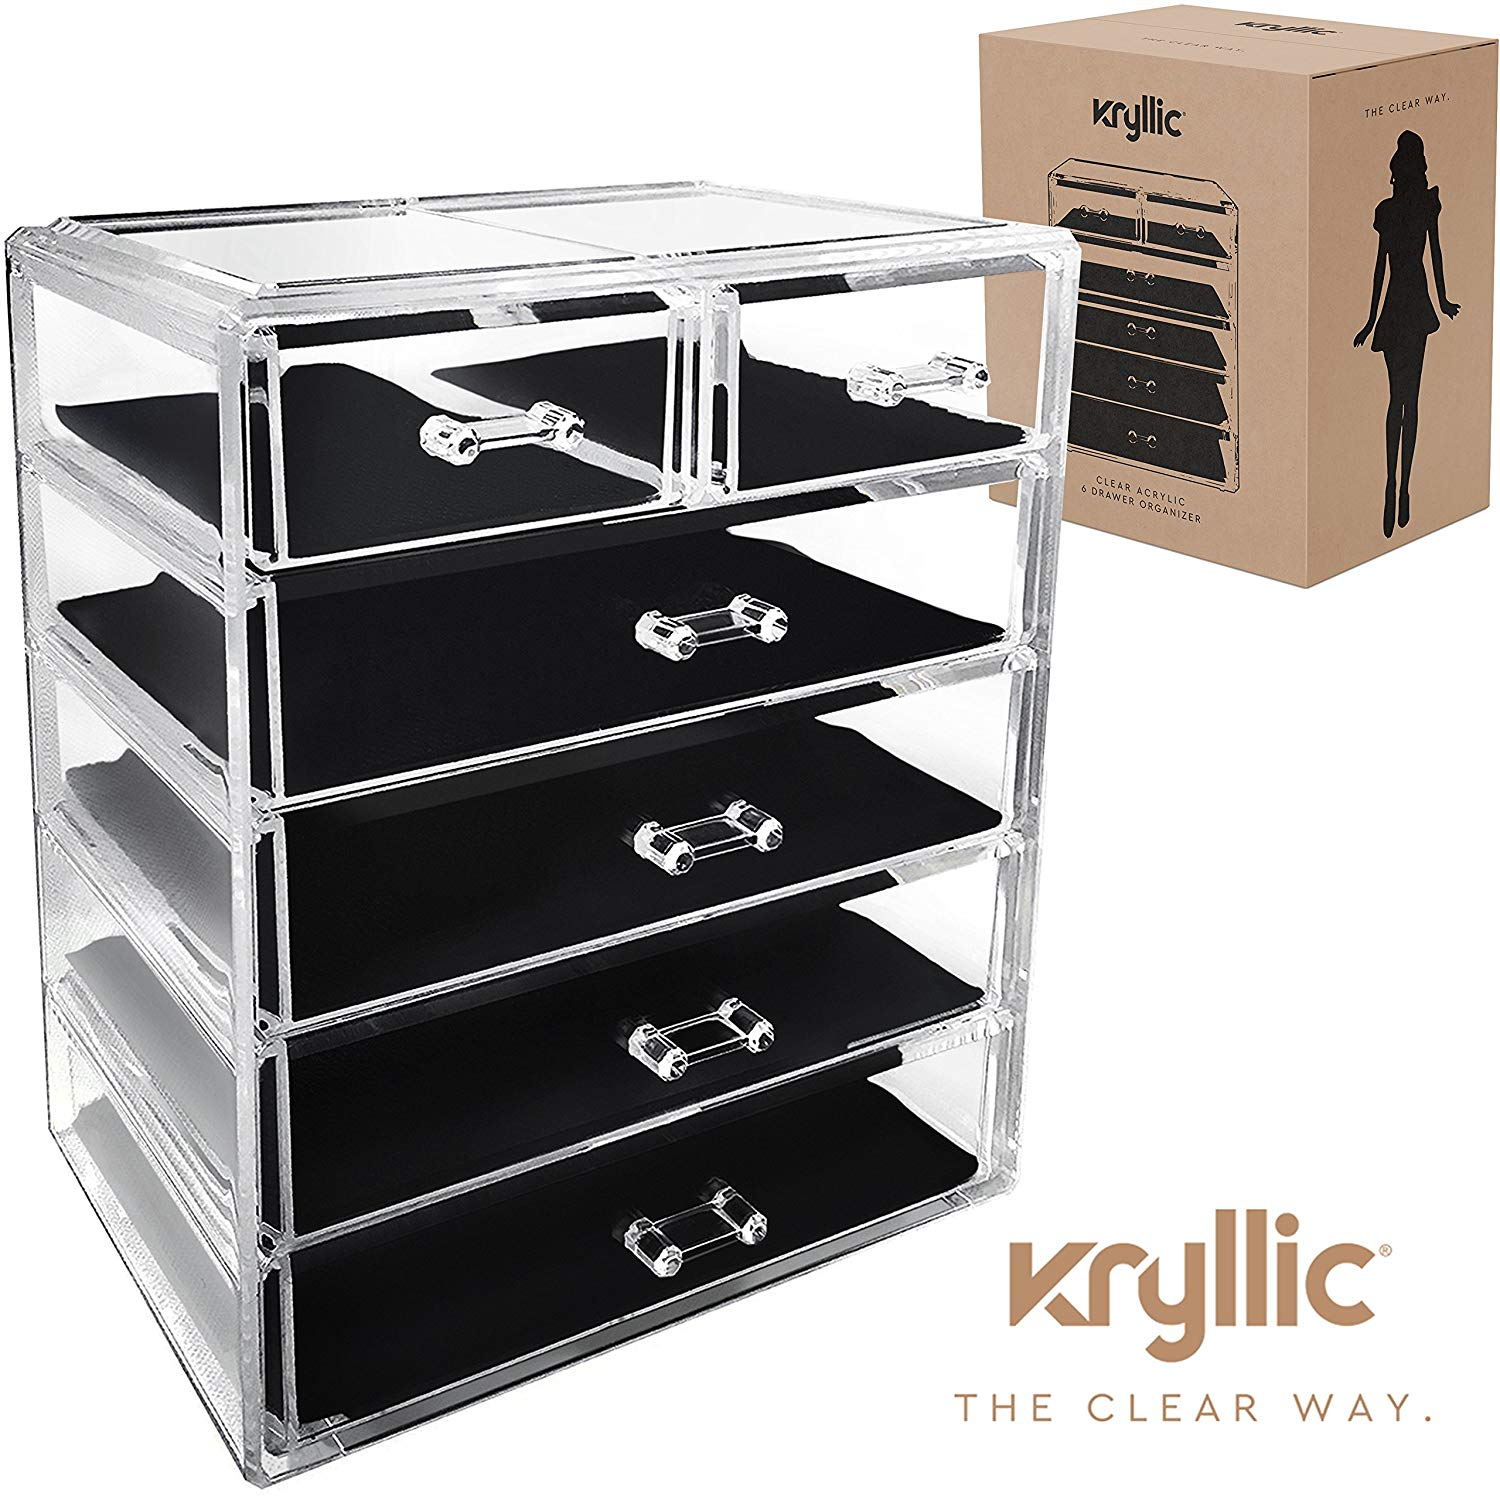 Acrylic Cosmetic Makeup Jewelry Organizer - Large 6 drawer make up holder for brush cream lipstick palette! Countertop beauty makeup organization box ideal storage for any bathroom or bedroom table!